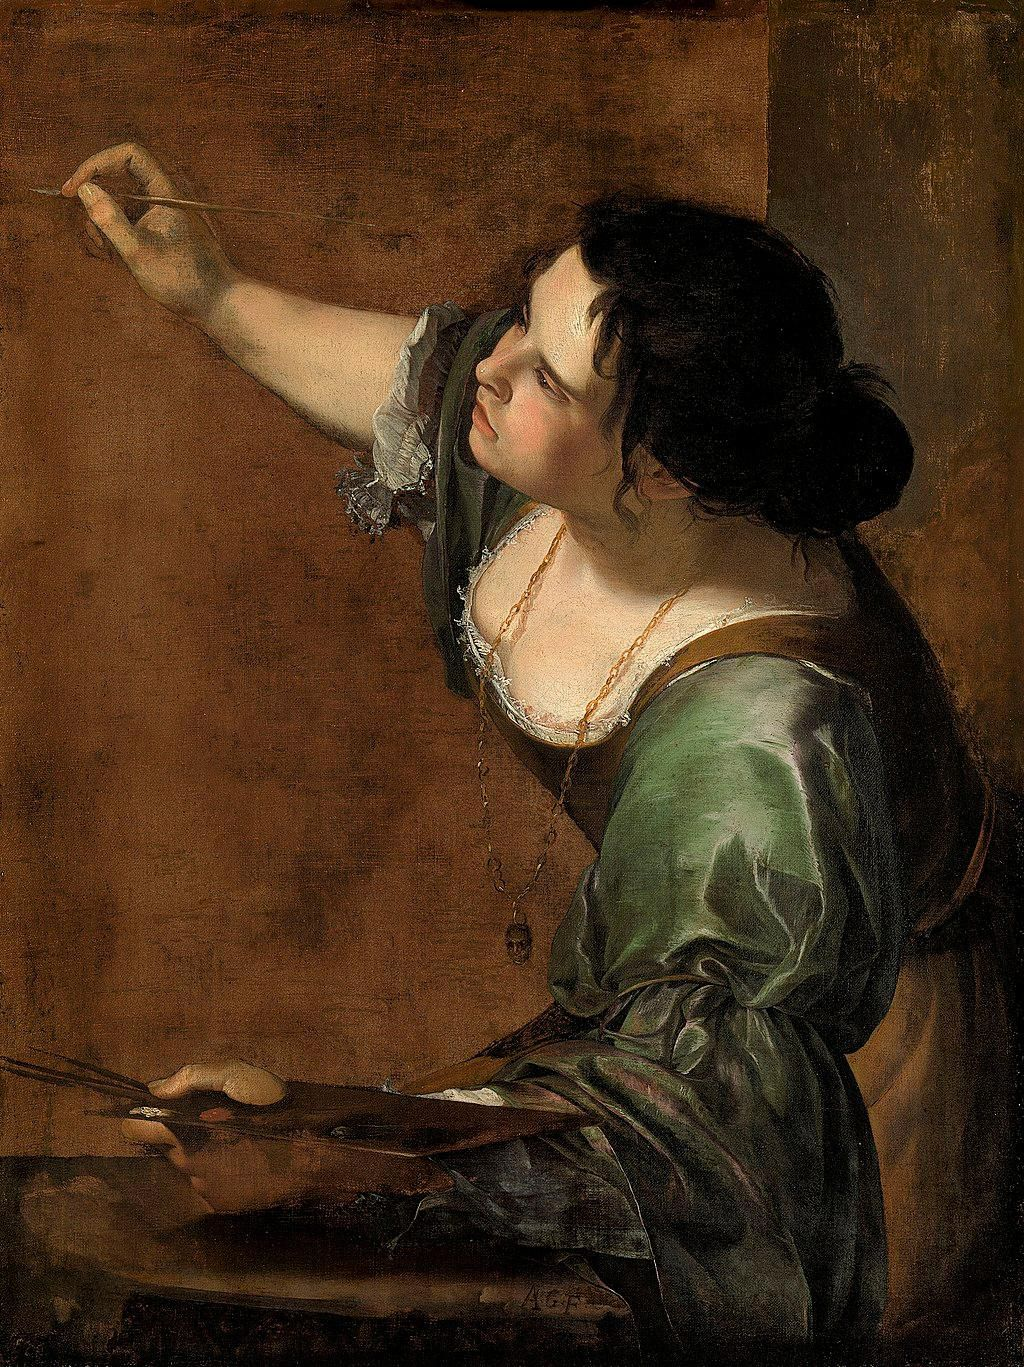 Self-Portrait as the Allegory of Painting, Artemisia Gentileschi